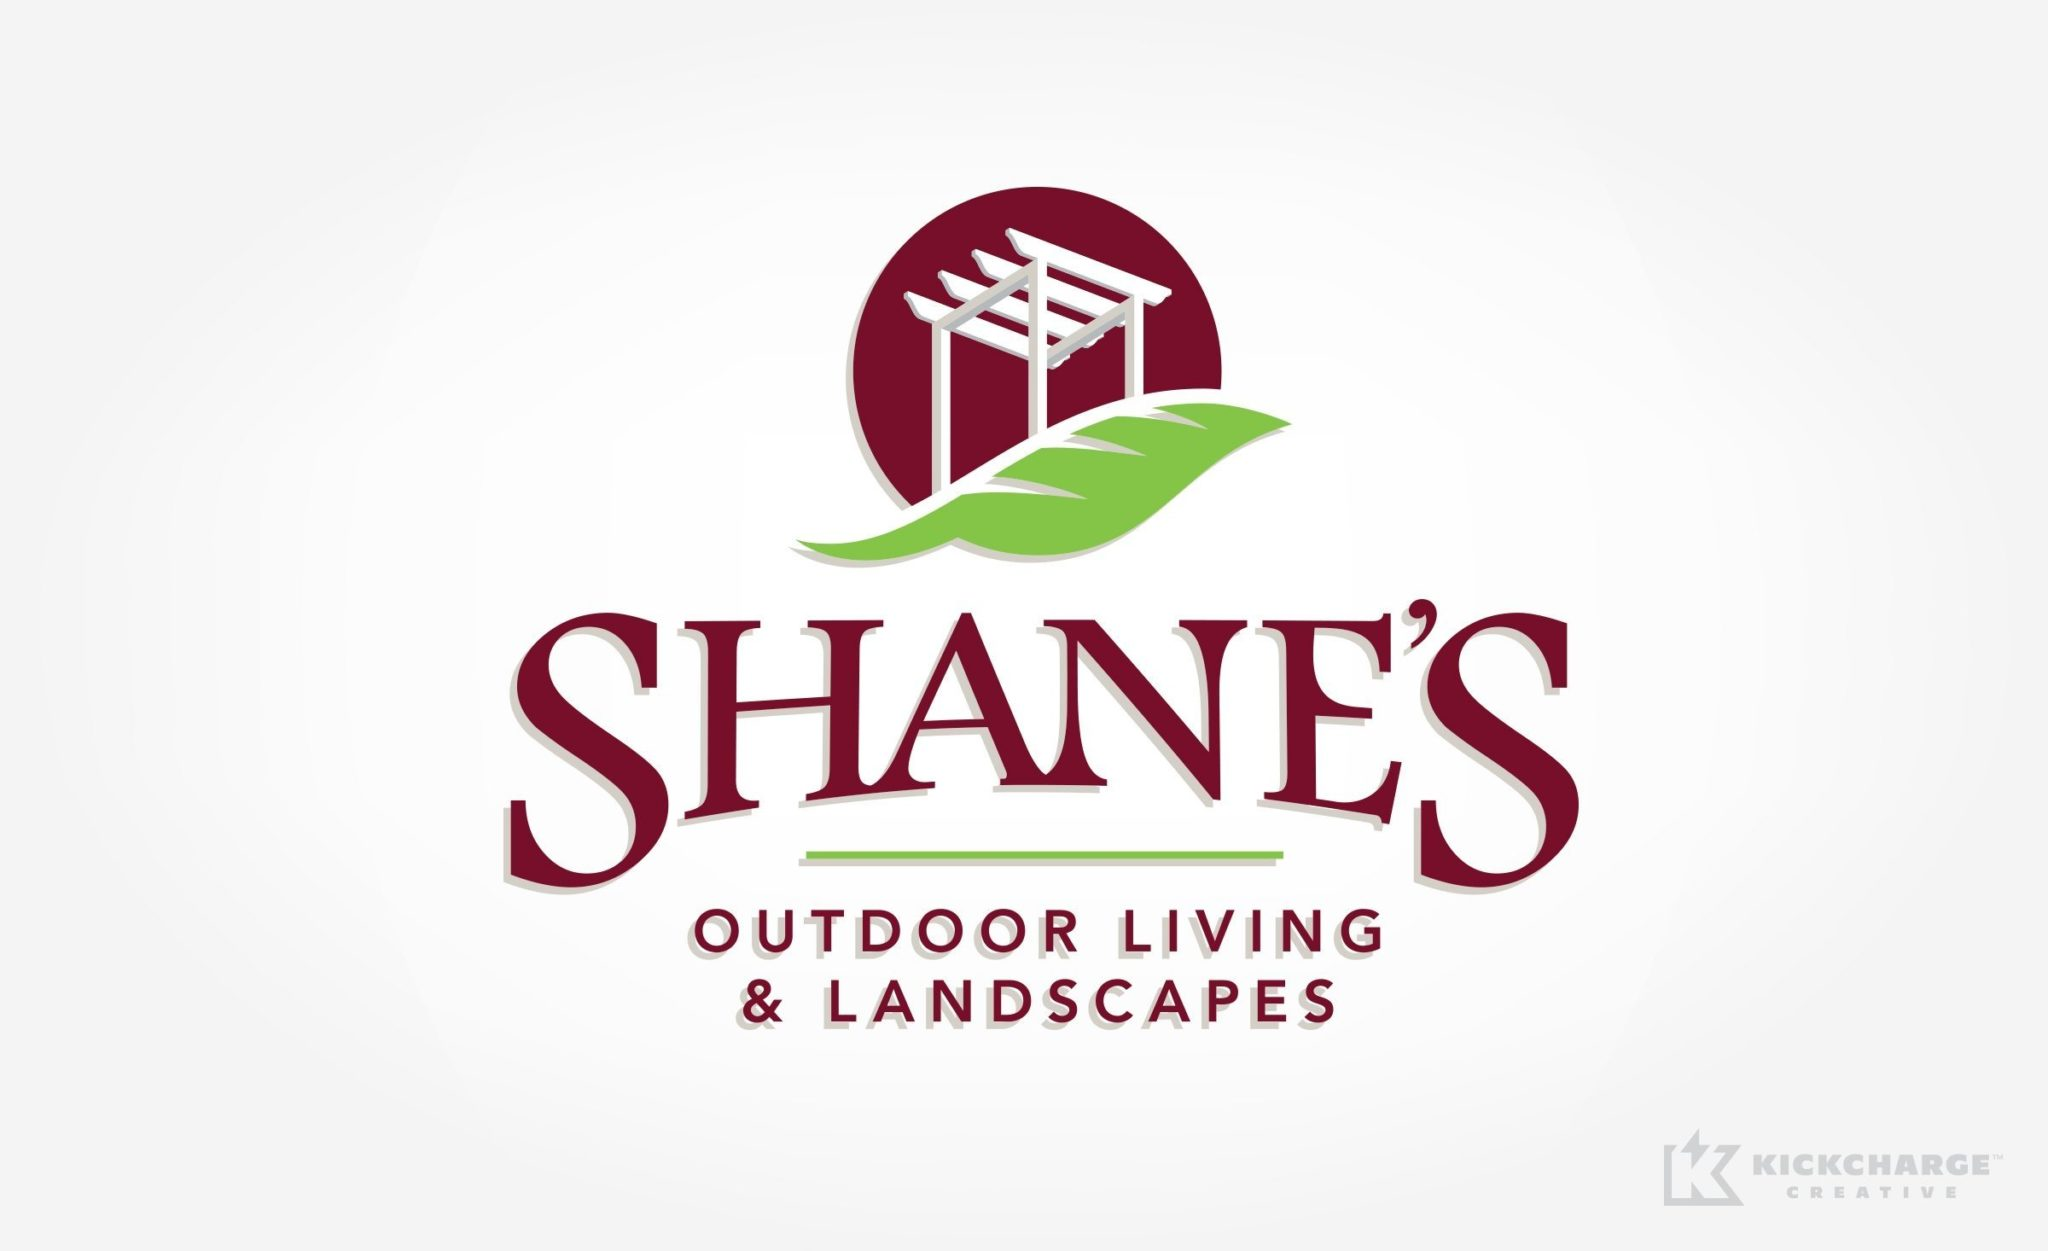 Shanes Outdoor Living & Landscapes